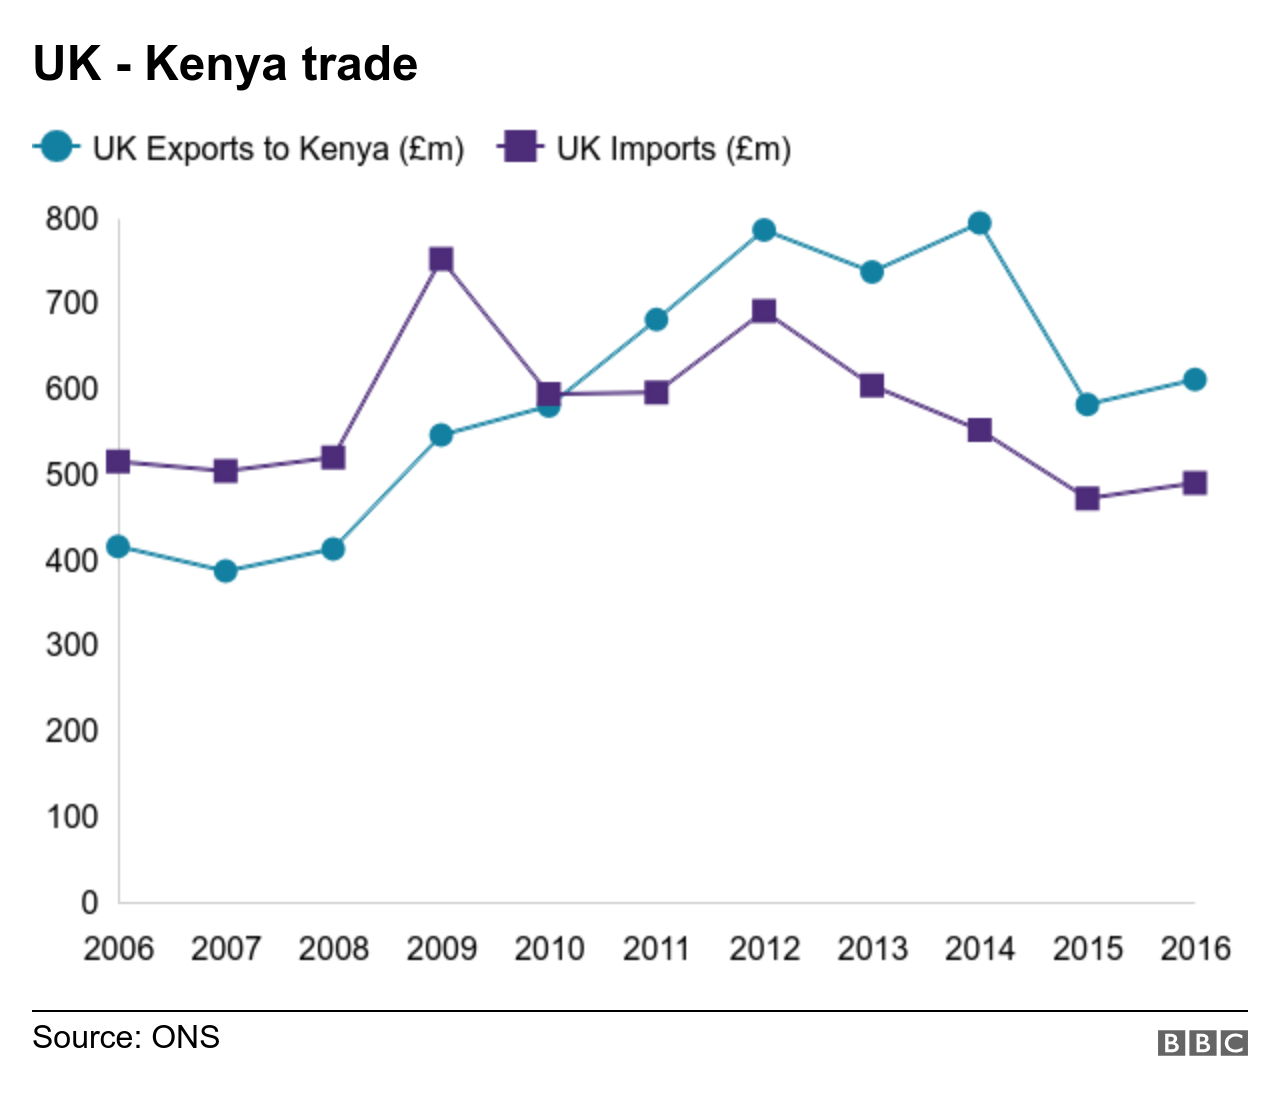 Chart shows imports and exports between Kenya and the UK